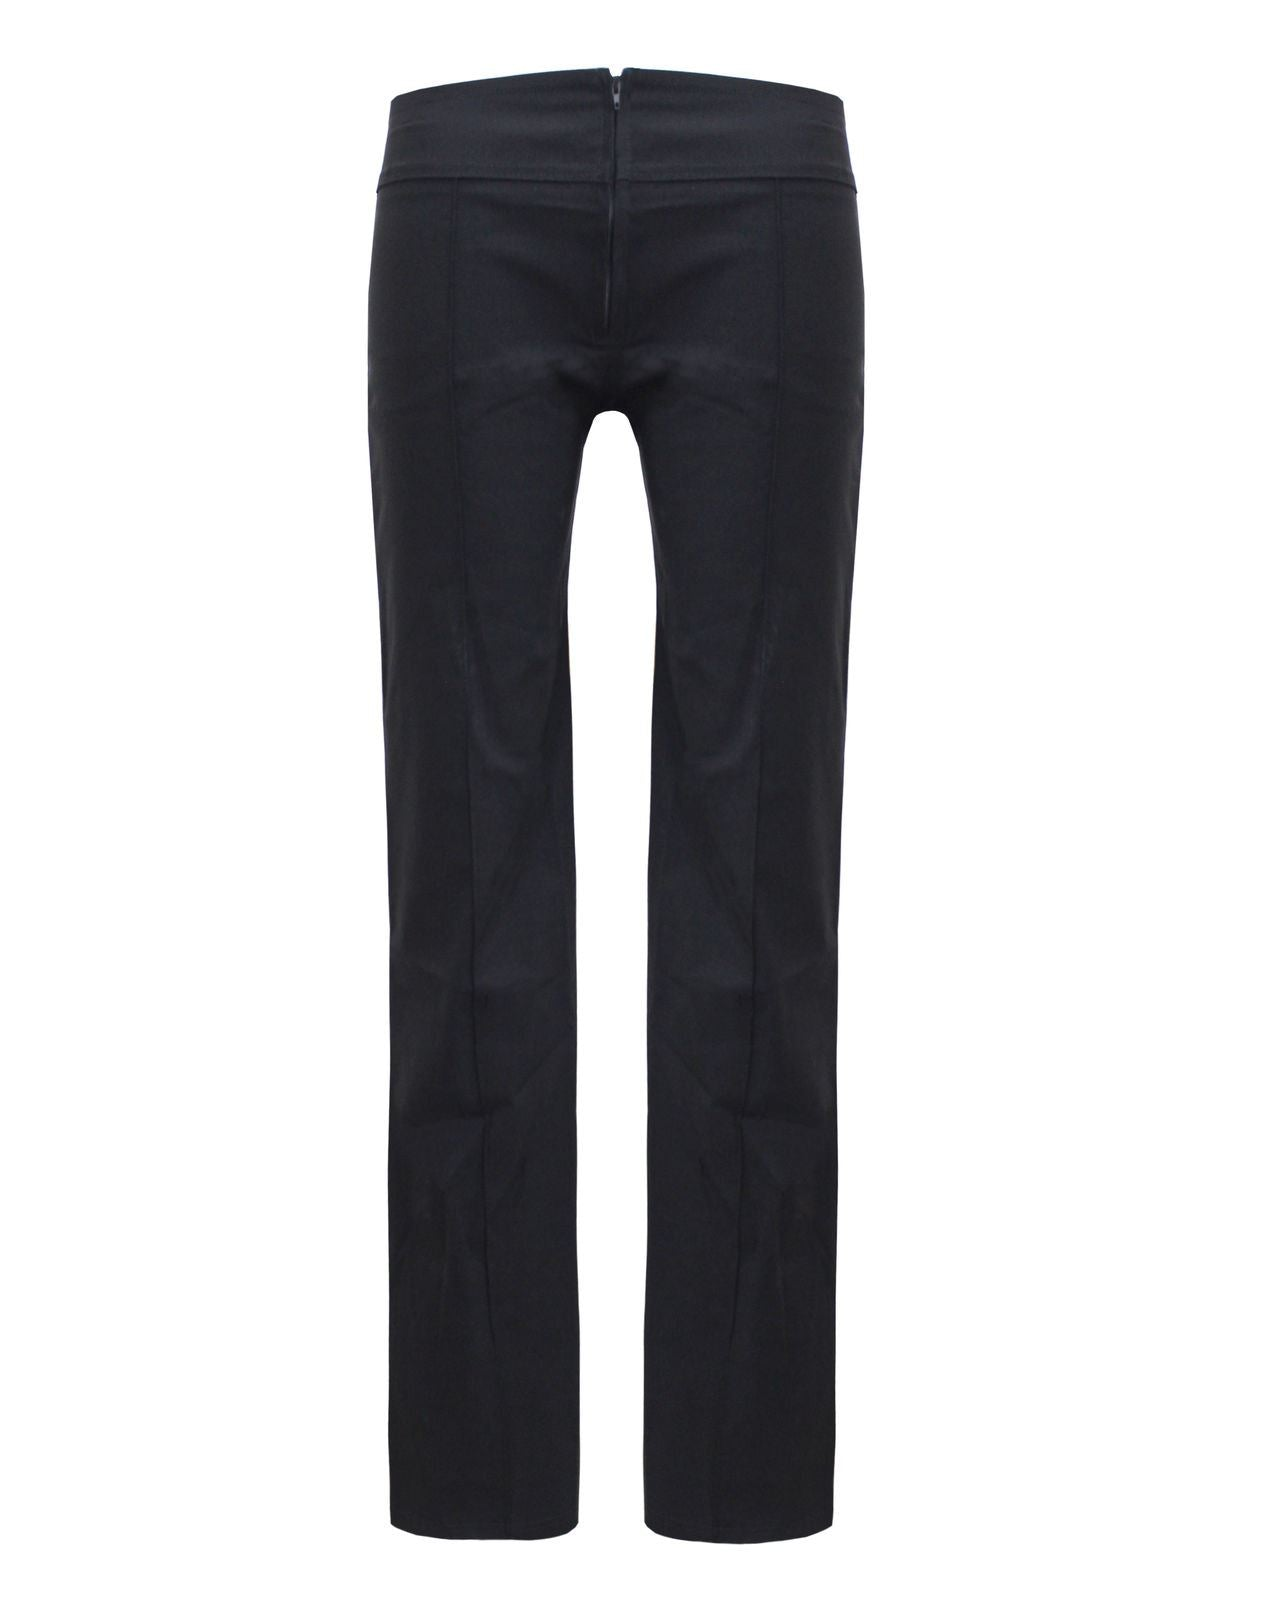 LADIES WOMENS STRETCHED BOOT CUT OFFICE SCHOOL HIPSTER TROUSER PANT 8 10 12 14